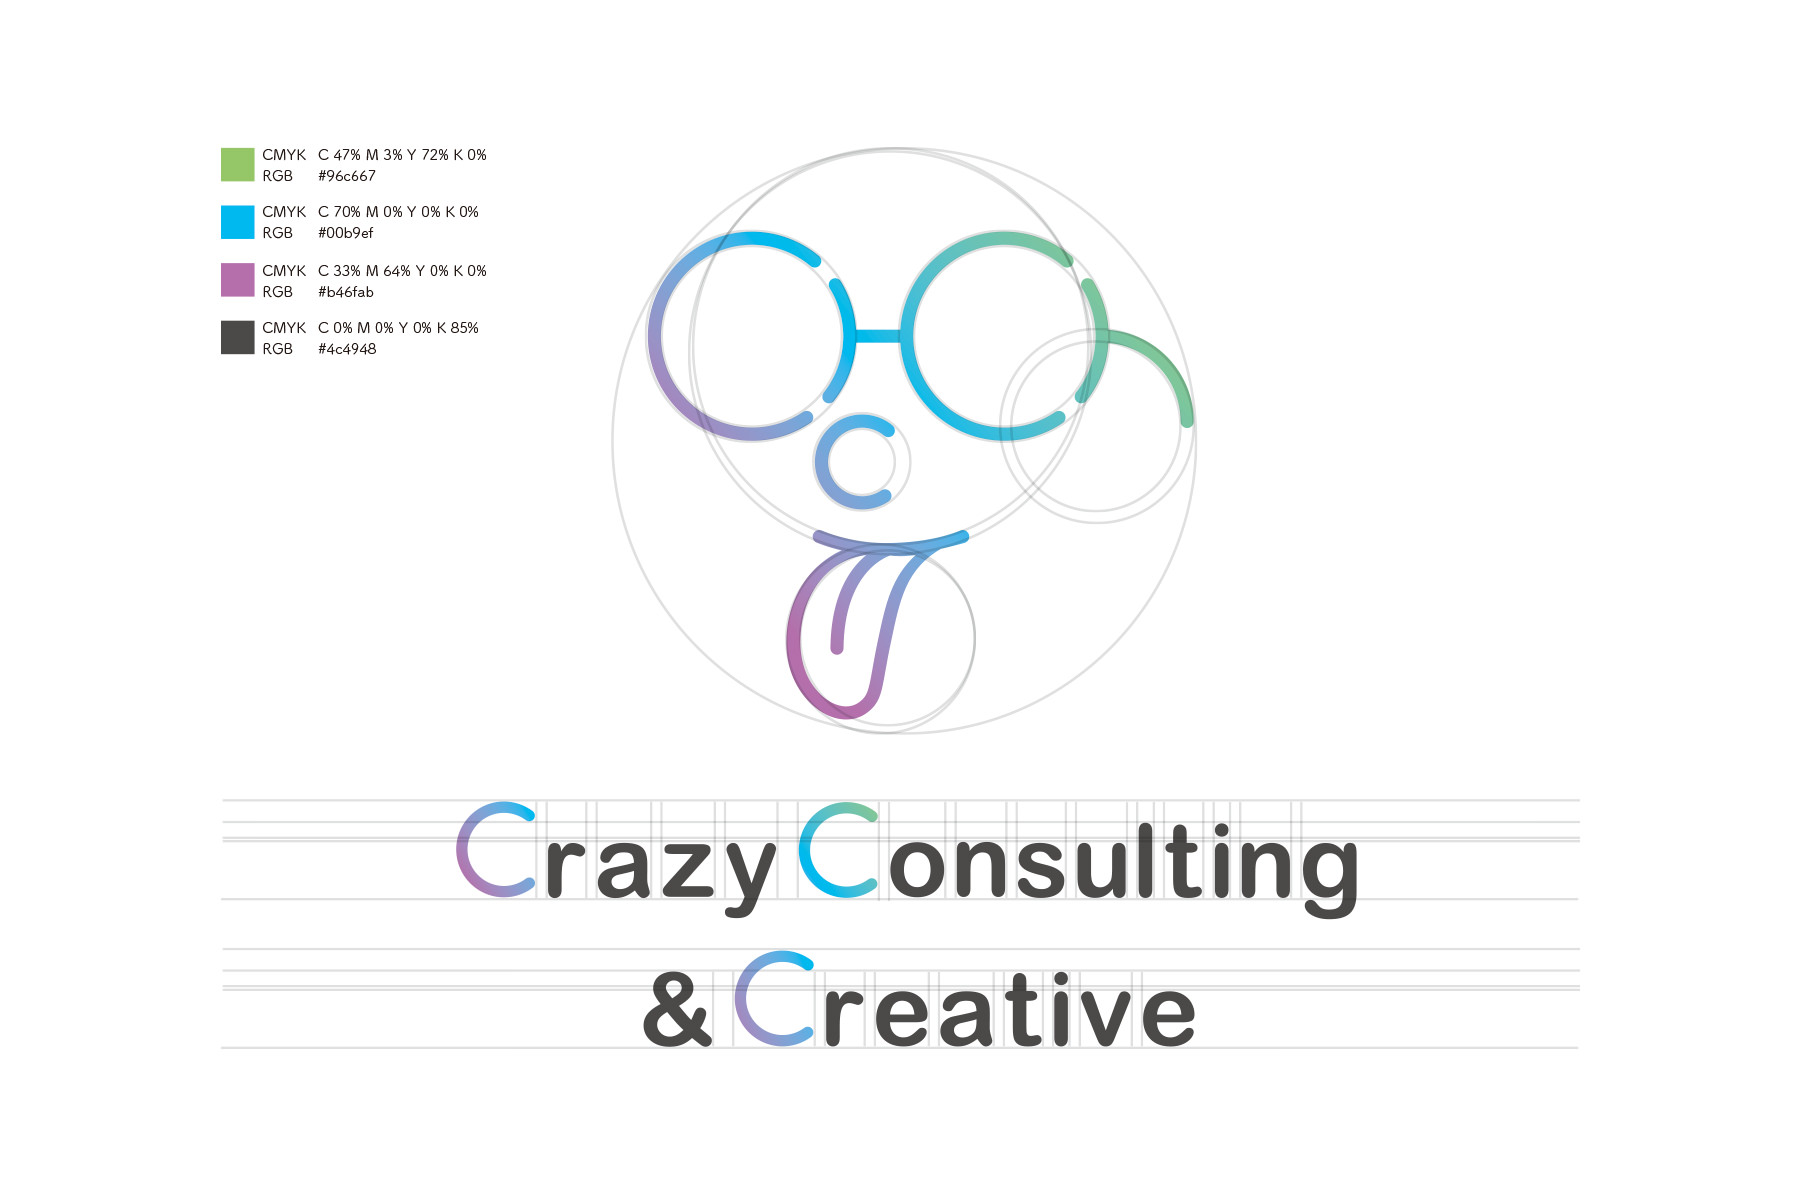 crazy consulting creativeロゴイメージ